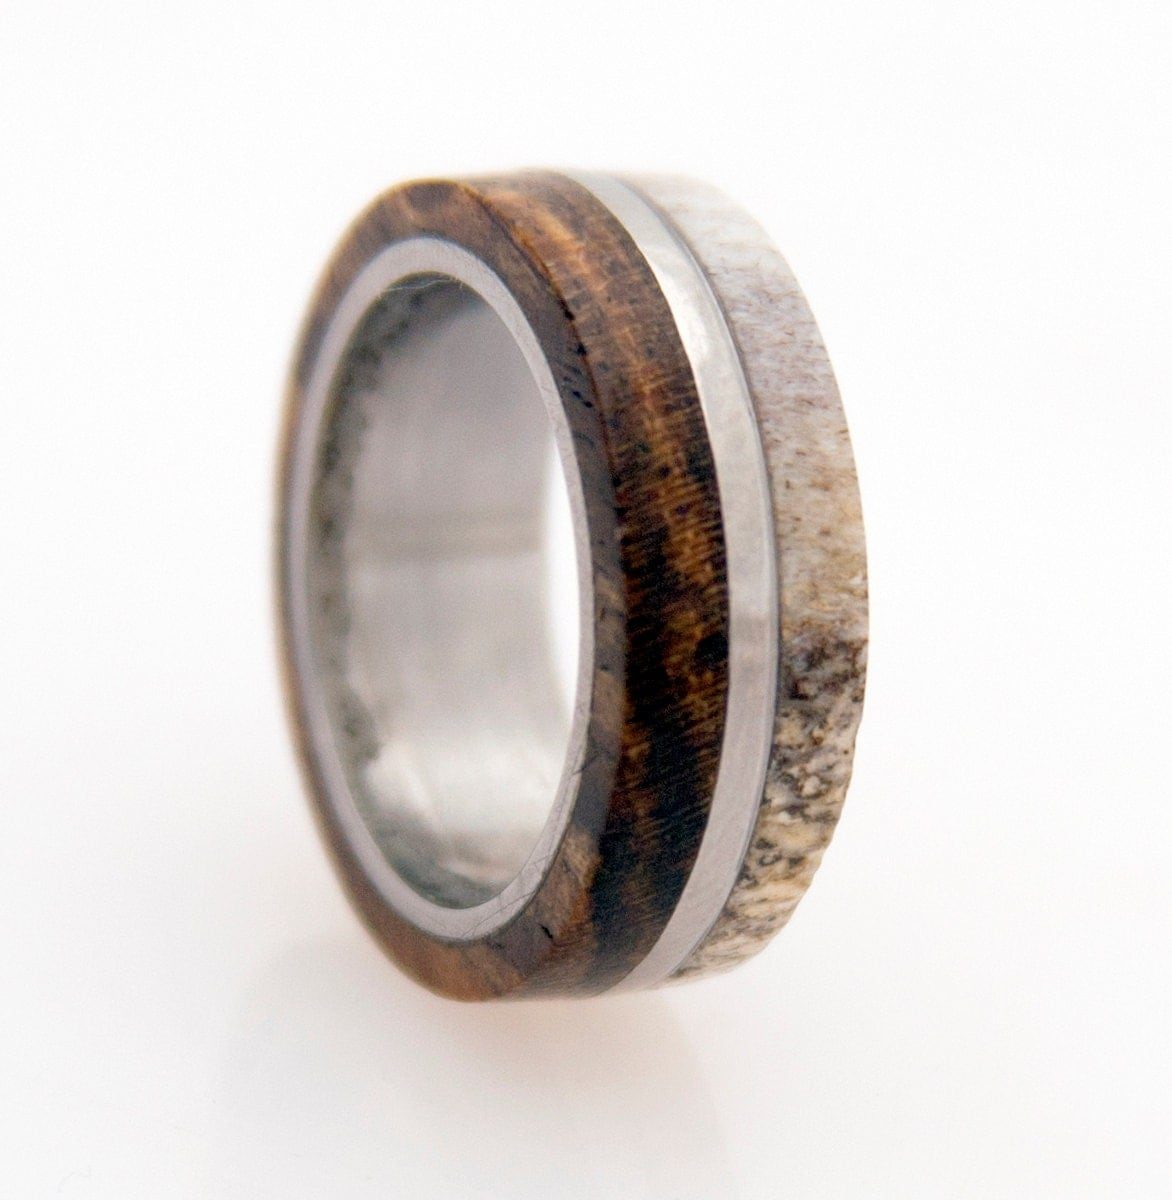 ring with wood bocote deer antler band zoom - Deer Antler Wedding Rings